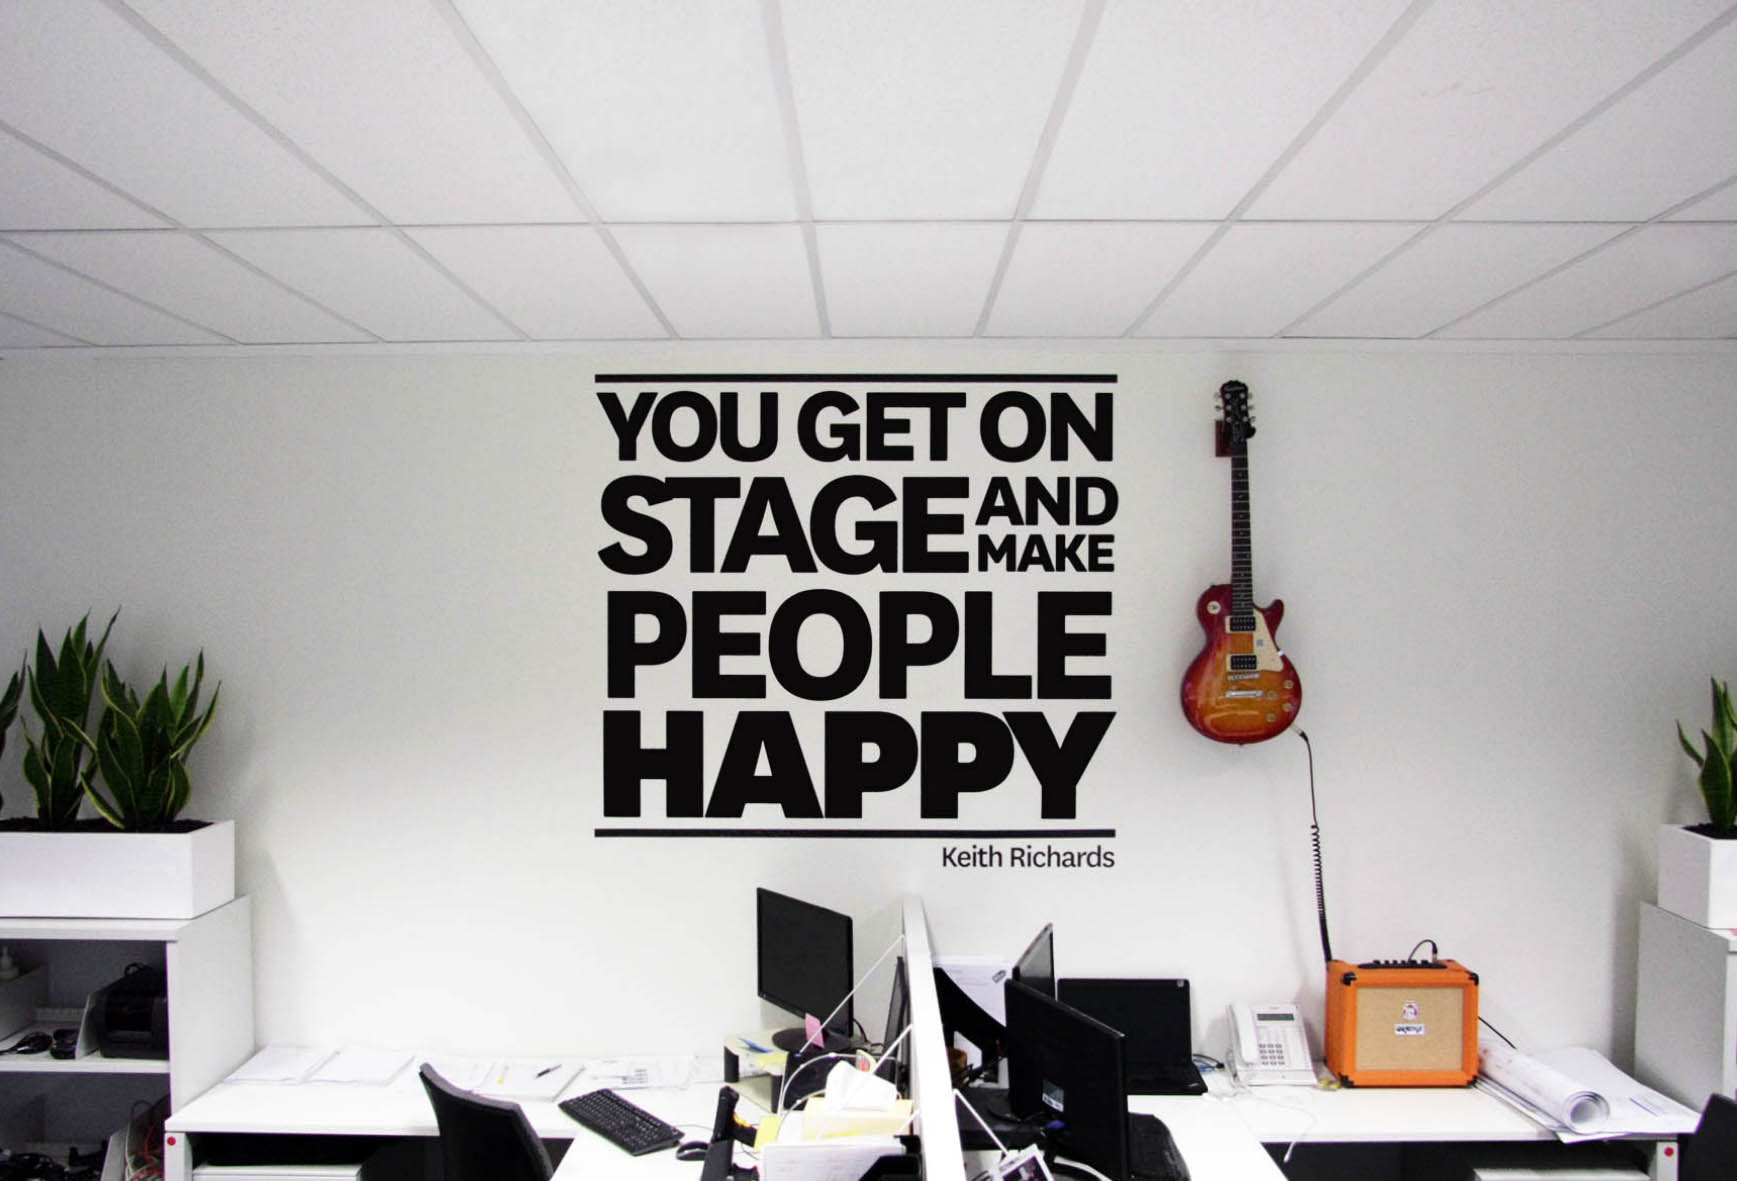 You get on stage and make people happy